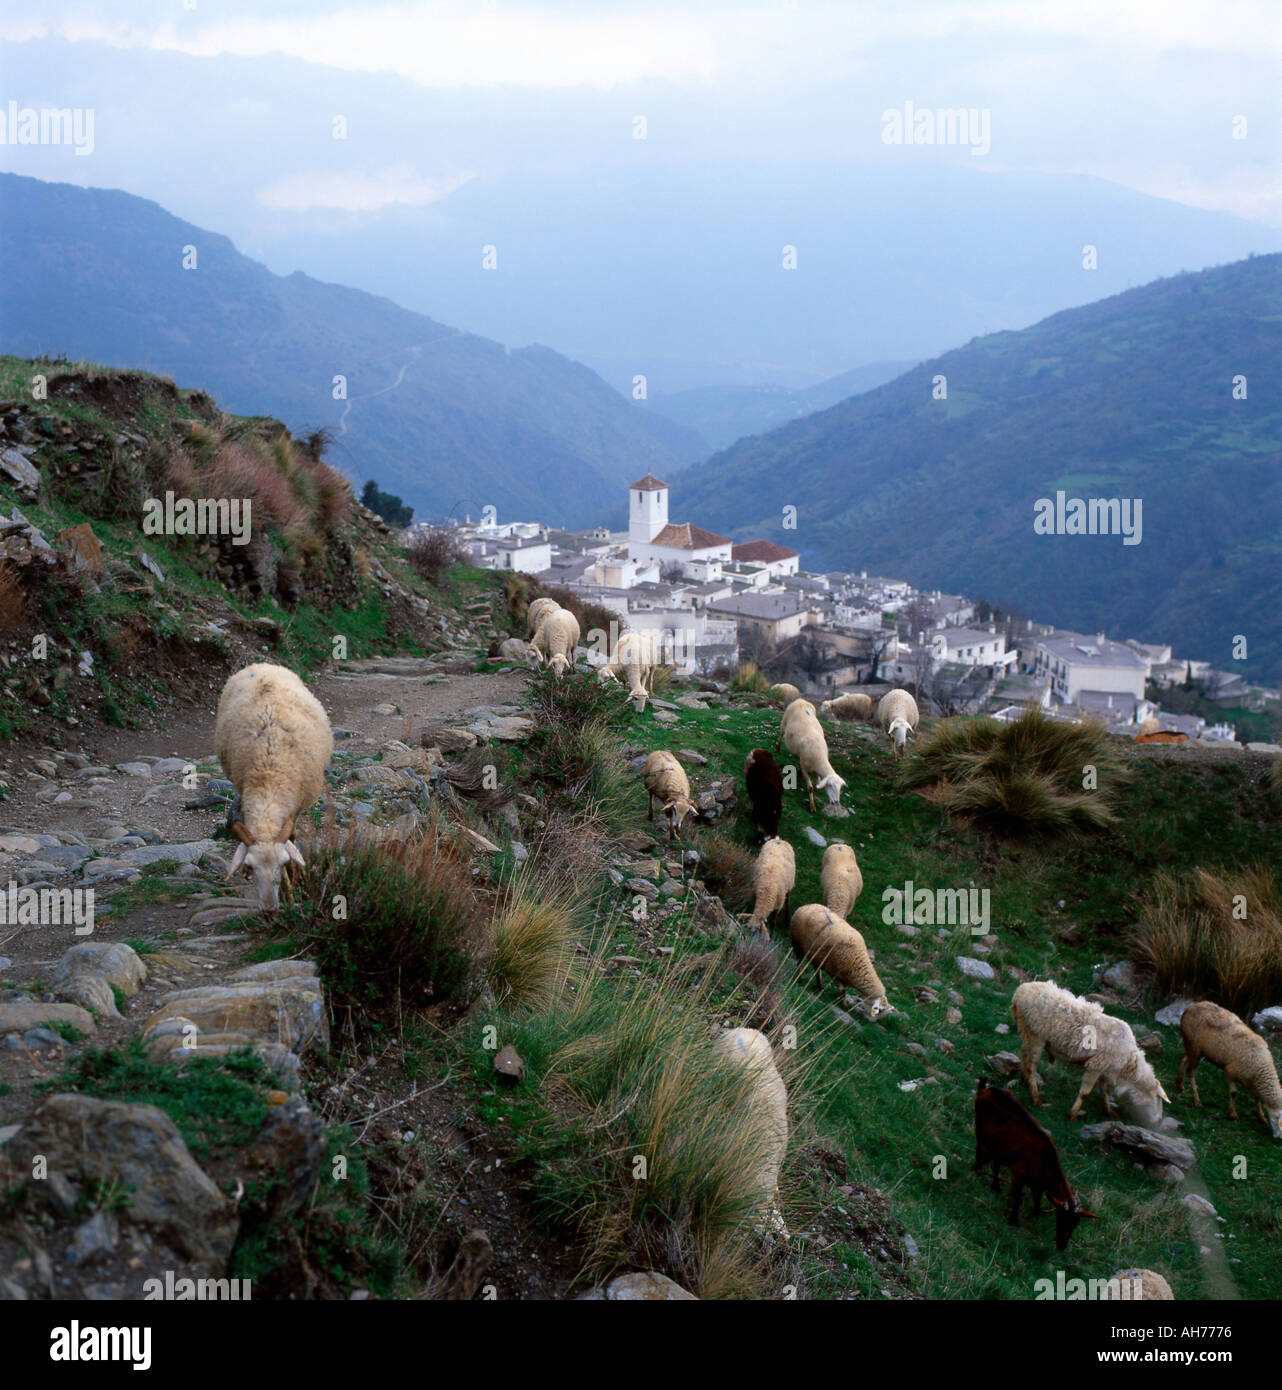 Sheep grazing along a footpath above Capileira an Alpujarras village Sierra Nevada Mtns in Andalusia Southern Spain KATHY DEWITT - Stock Image